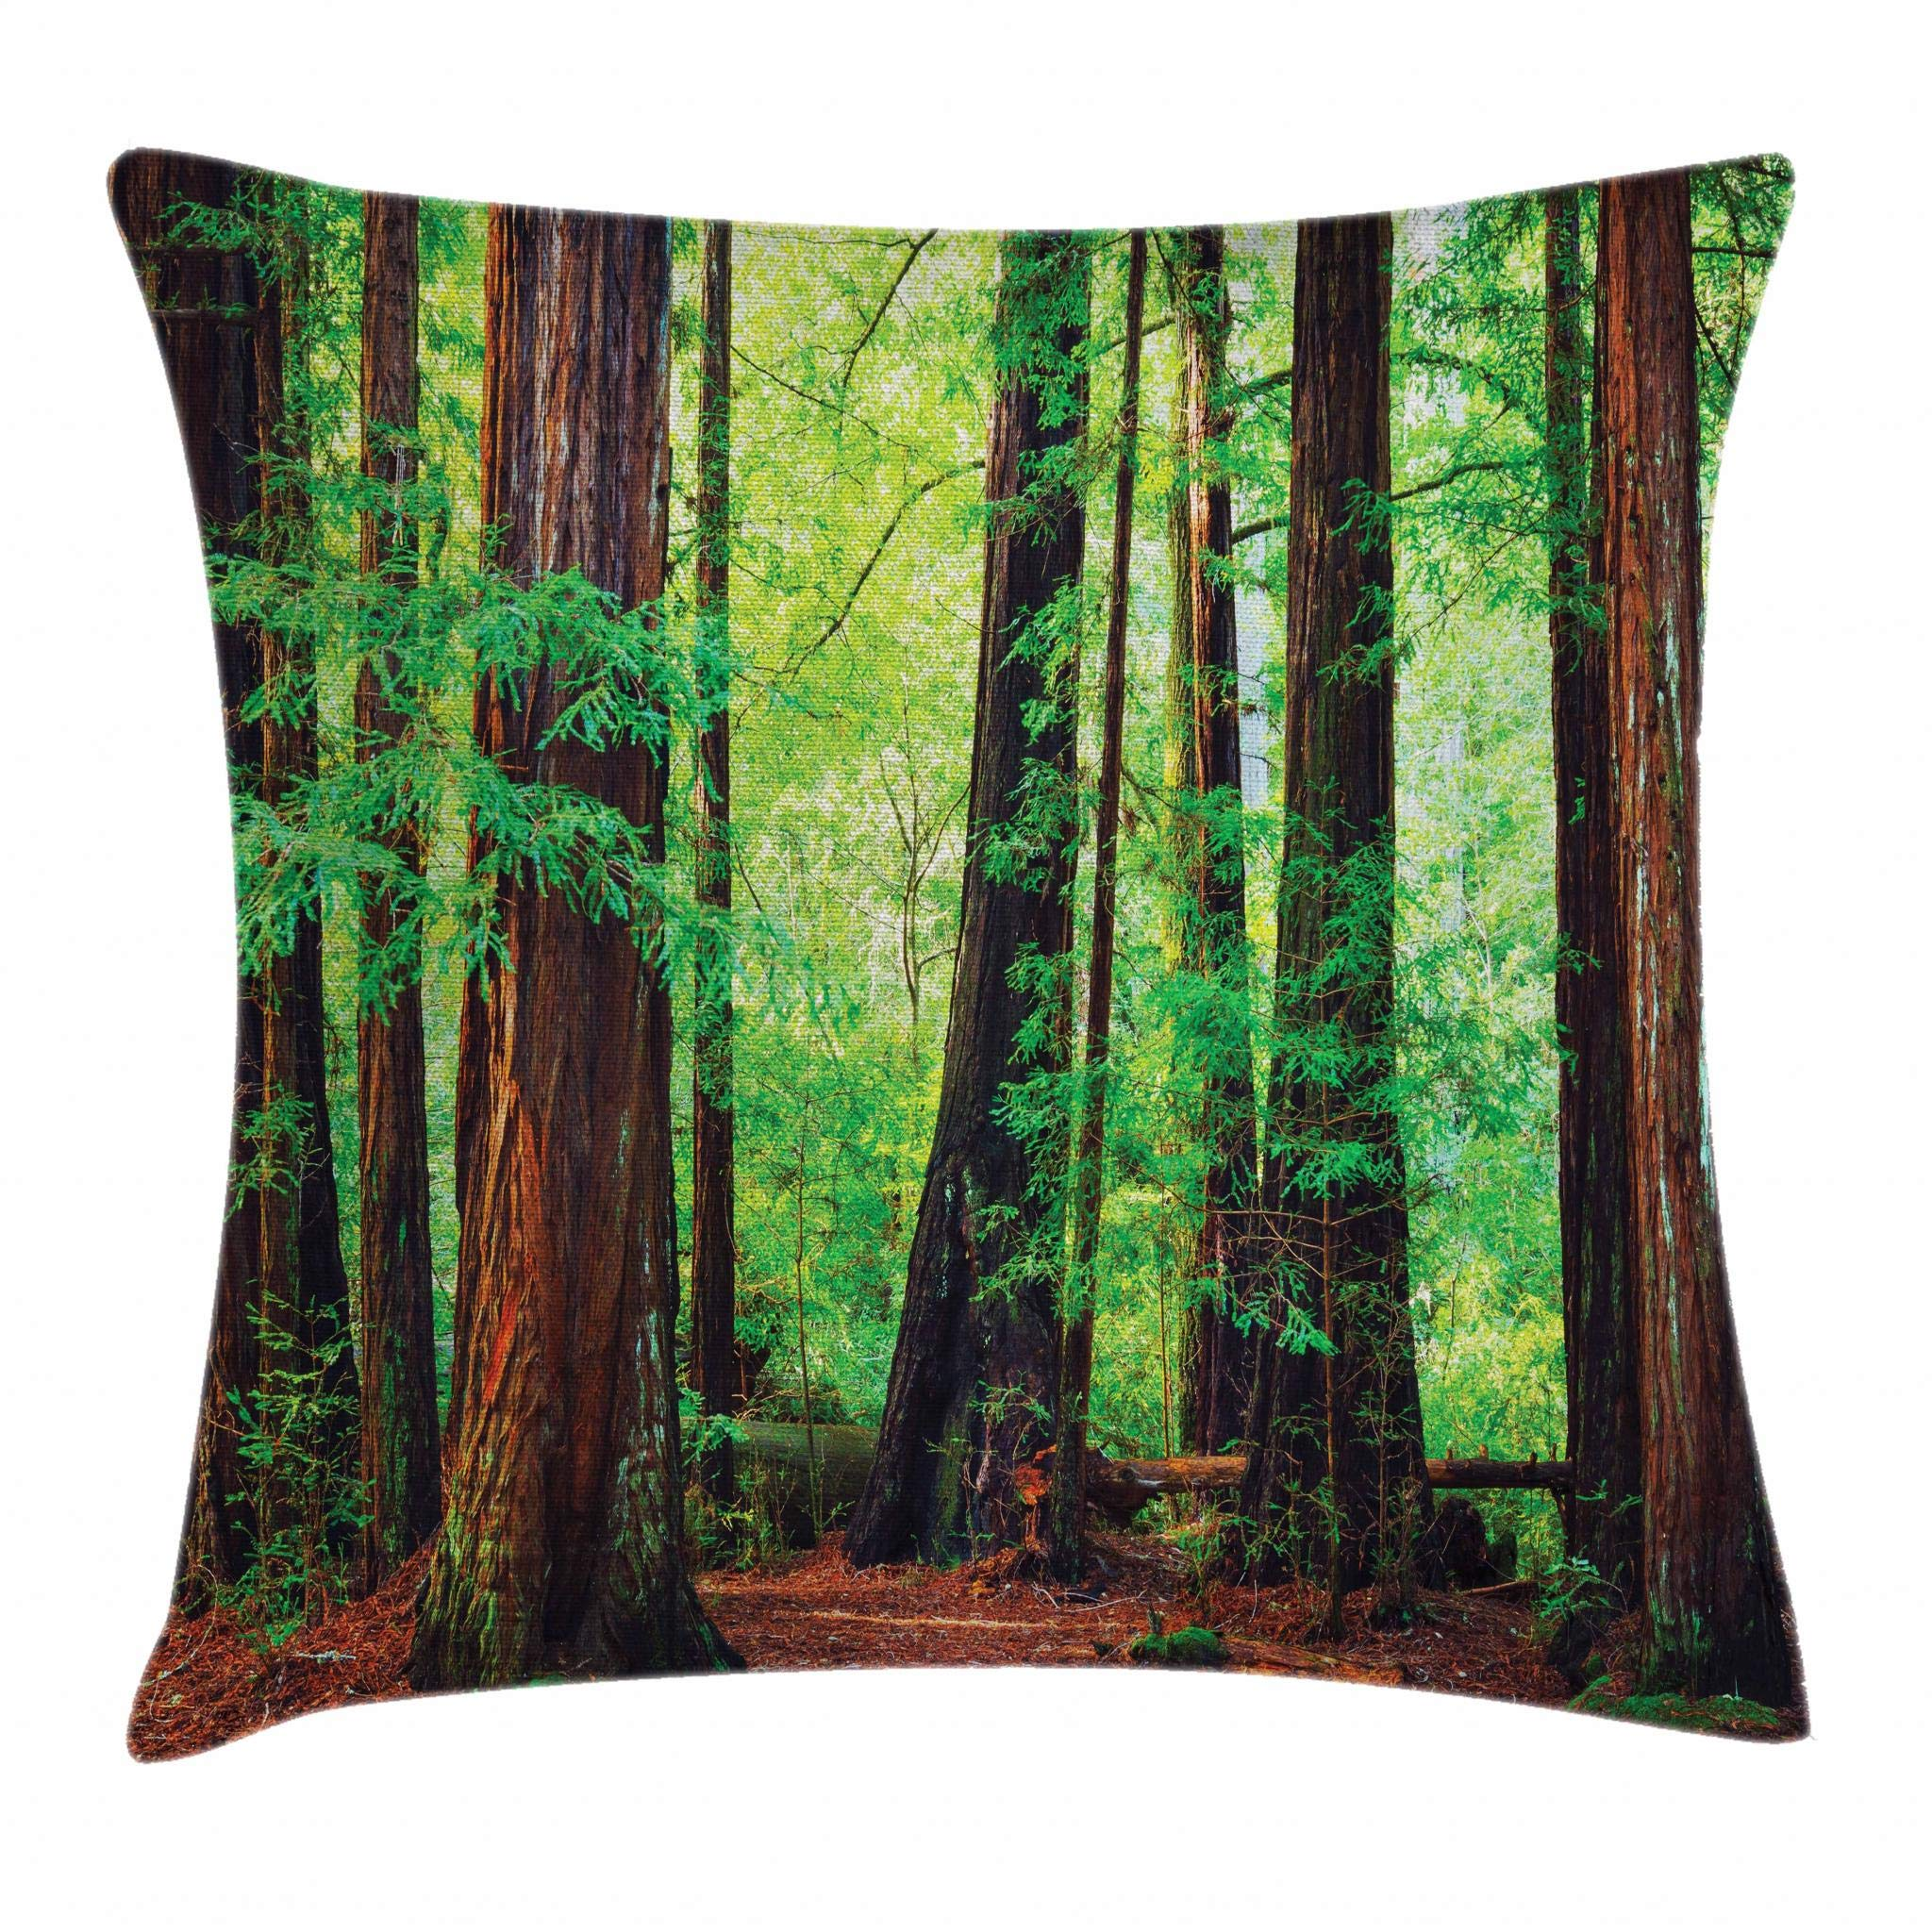 Ambesonne Woodland Throw Pillow Cushion Cover, Redwood Trees Northwest Rain Forest Tropical Scenic Wild Nature Lush Branch, Decorative Square Accent Pillow Case, 18'' X 18'', Brown Green by Ambesonne